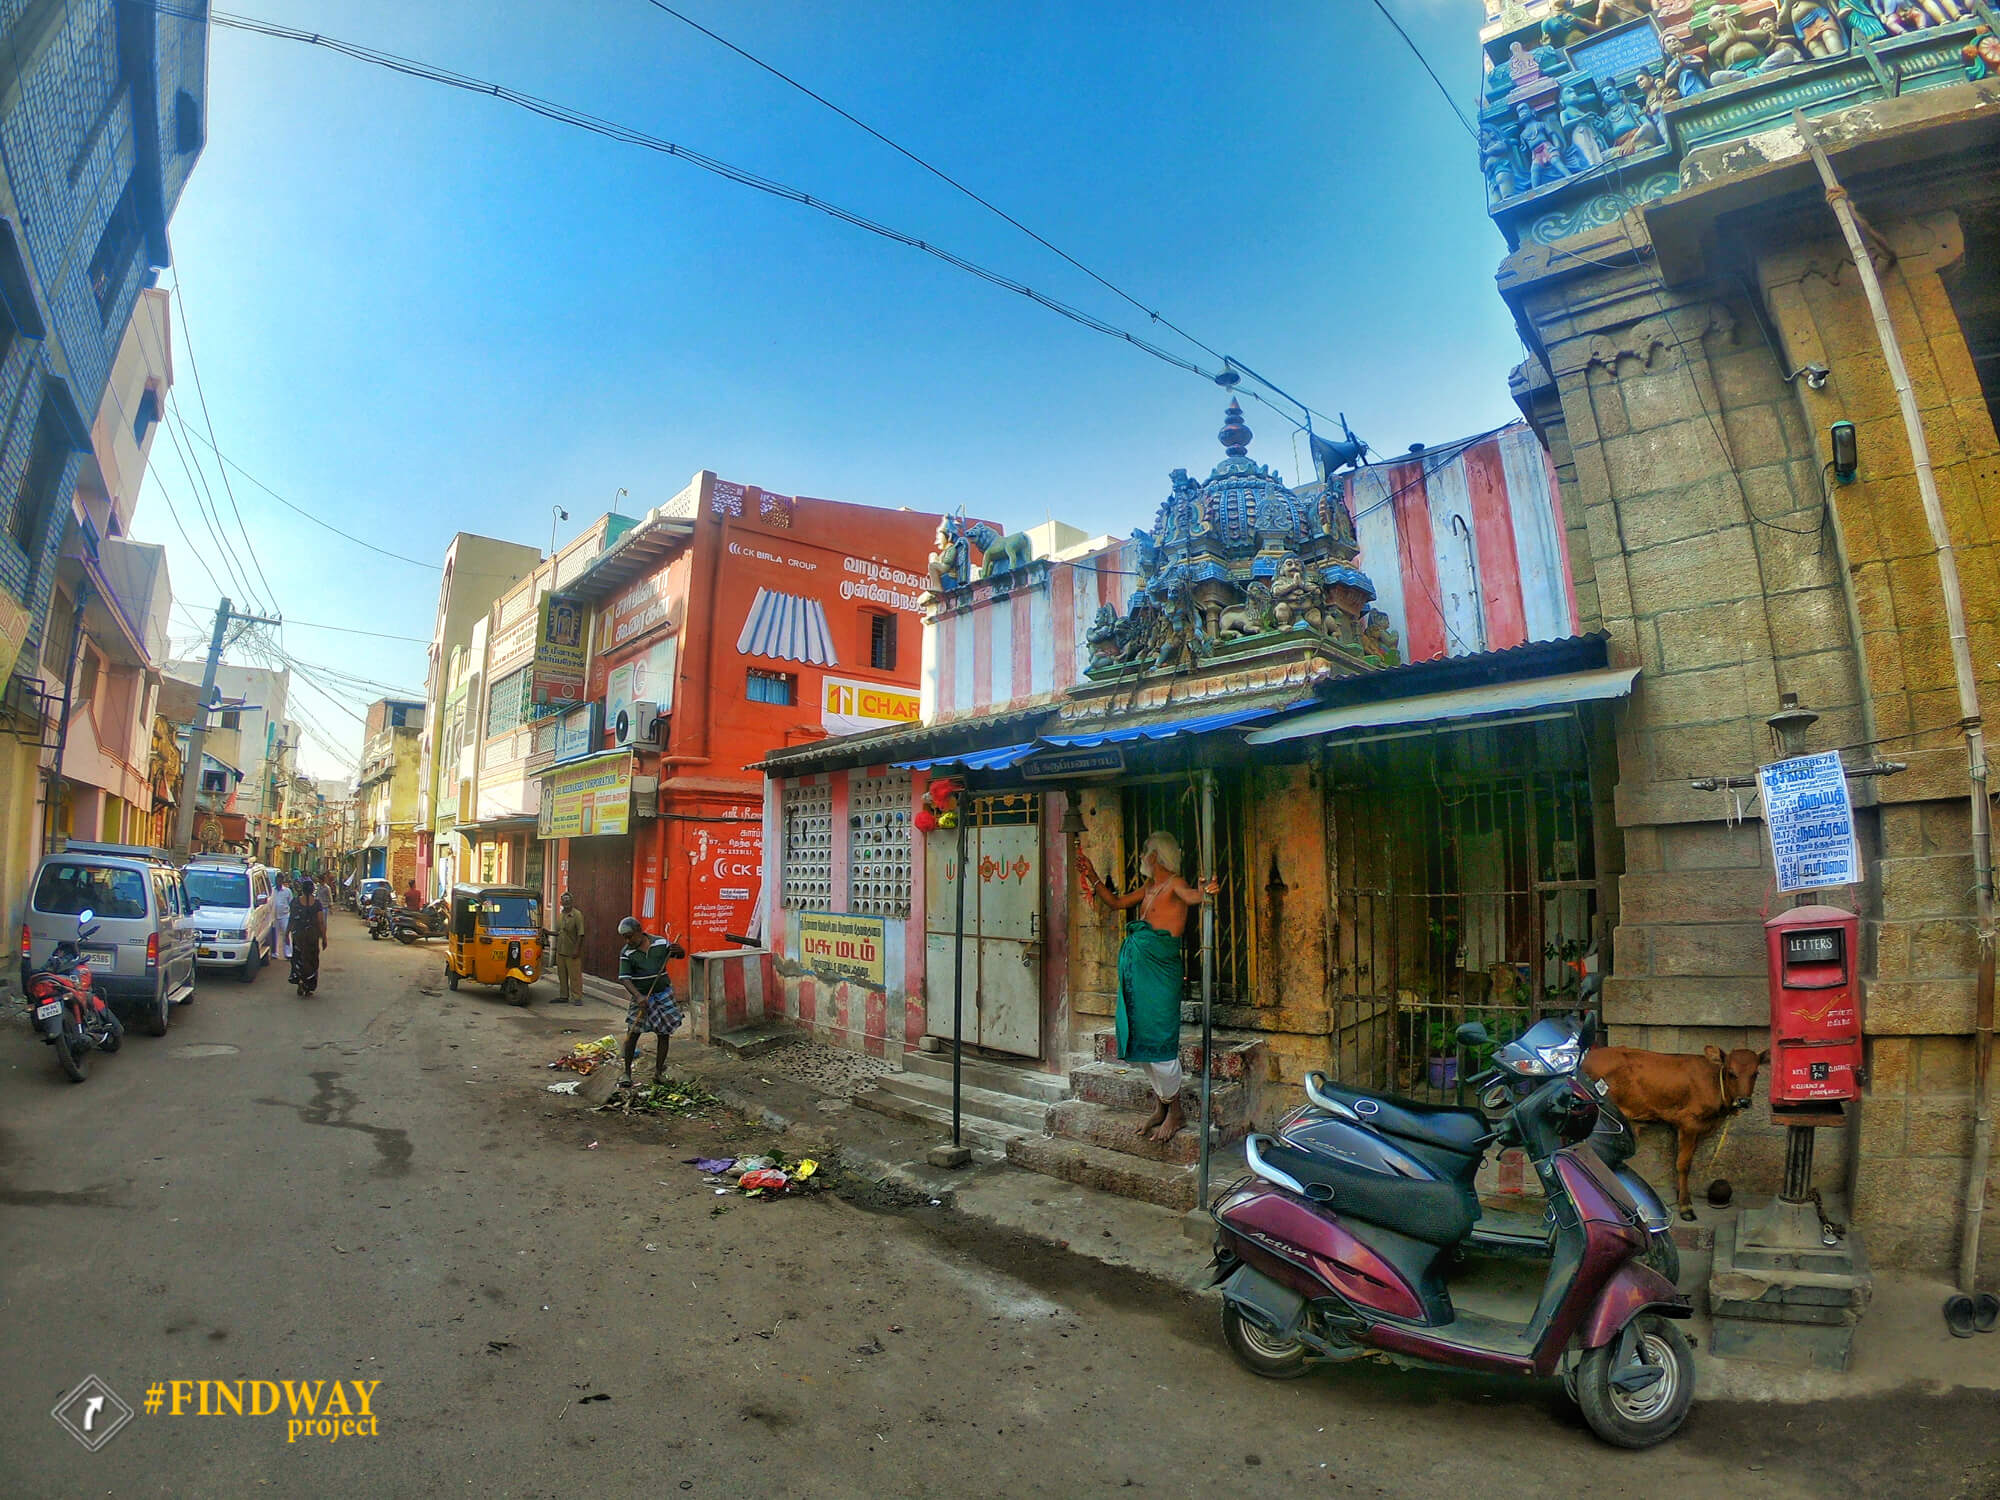 find way photos blog travel around india streets of madurai